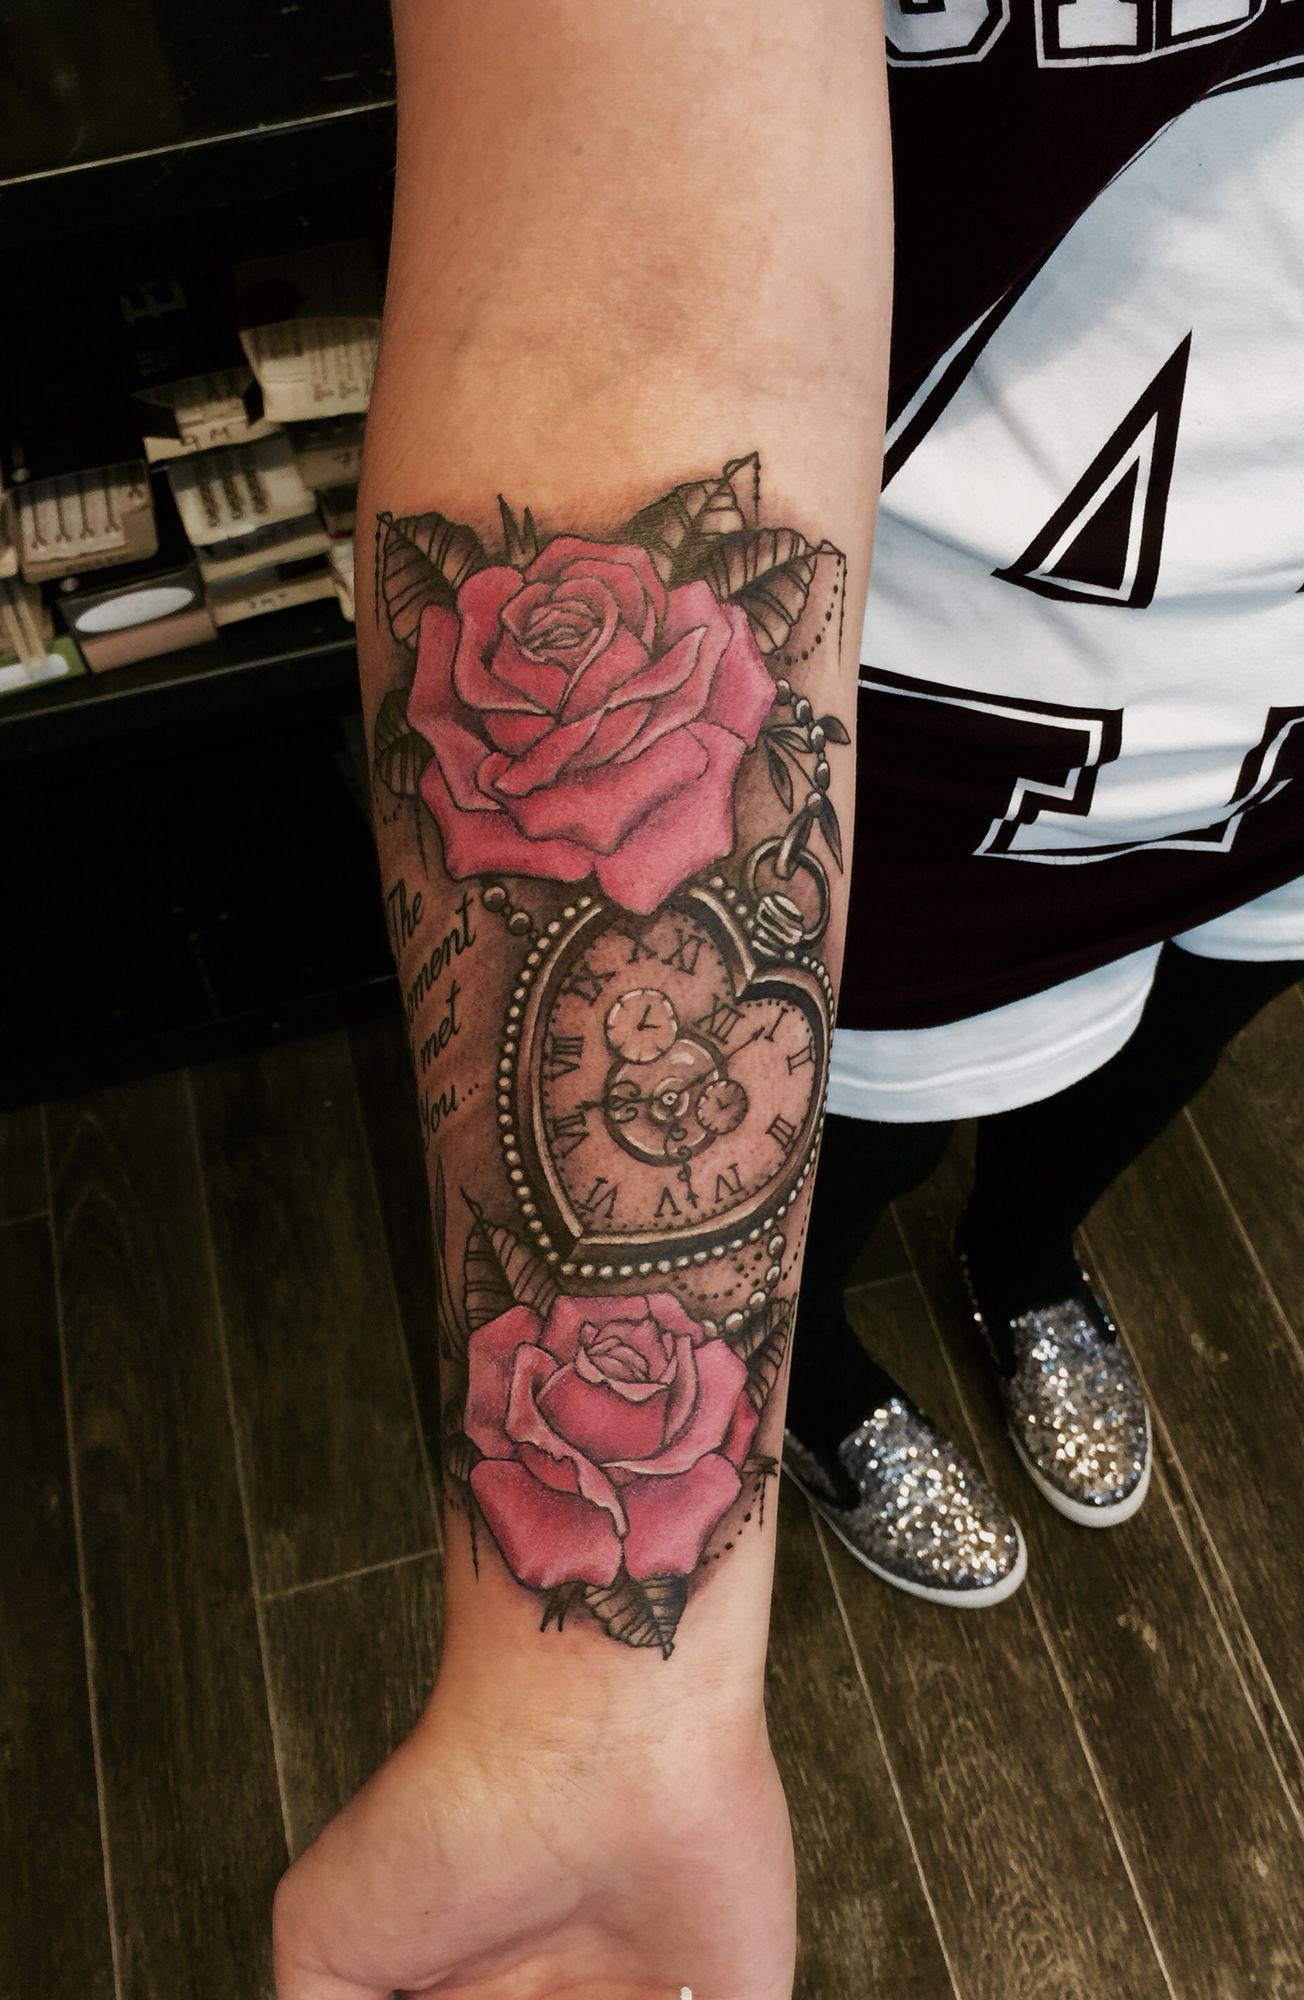 Clock forearm black rose sleeve tattoo - Heart Shaped Pocket Watch And Roses Tattoo By Dzeraldas Kudrevicius